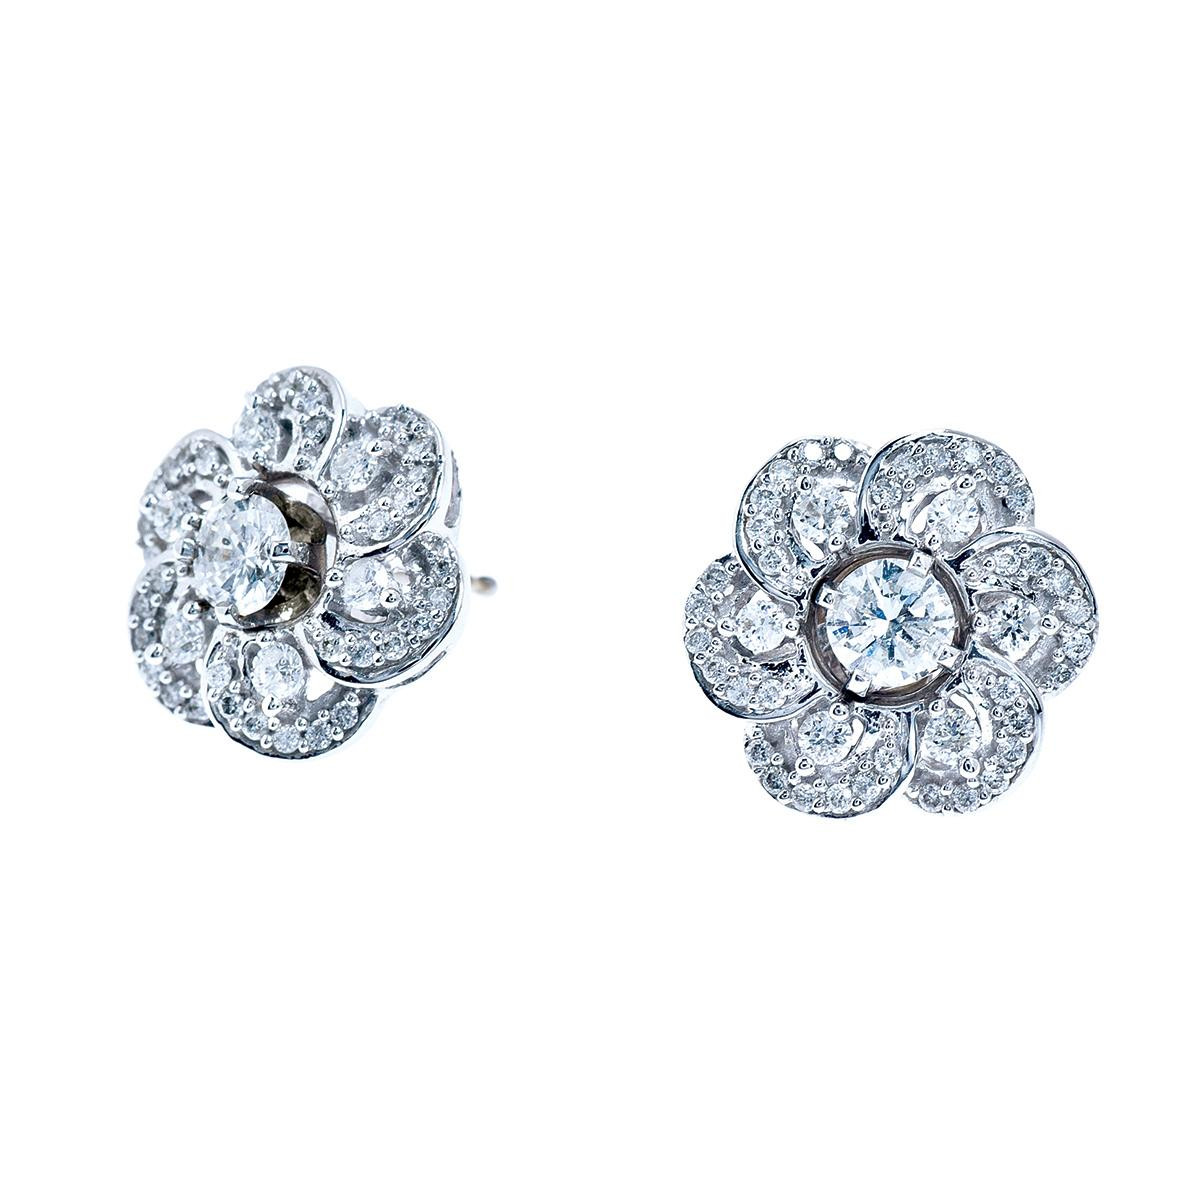 14k White Gold Diamond Earrings And Earring Jackets Gallery Image